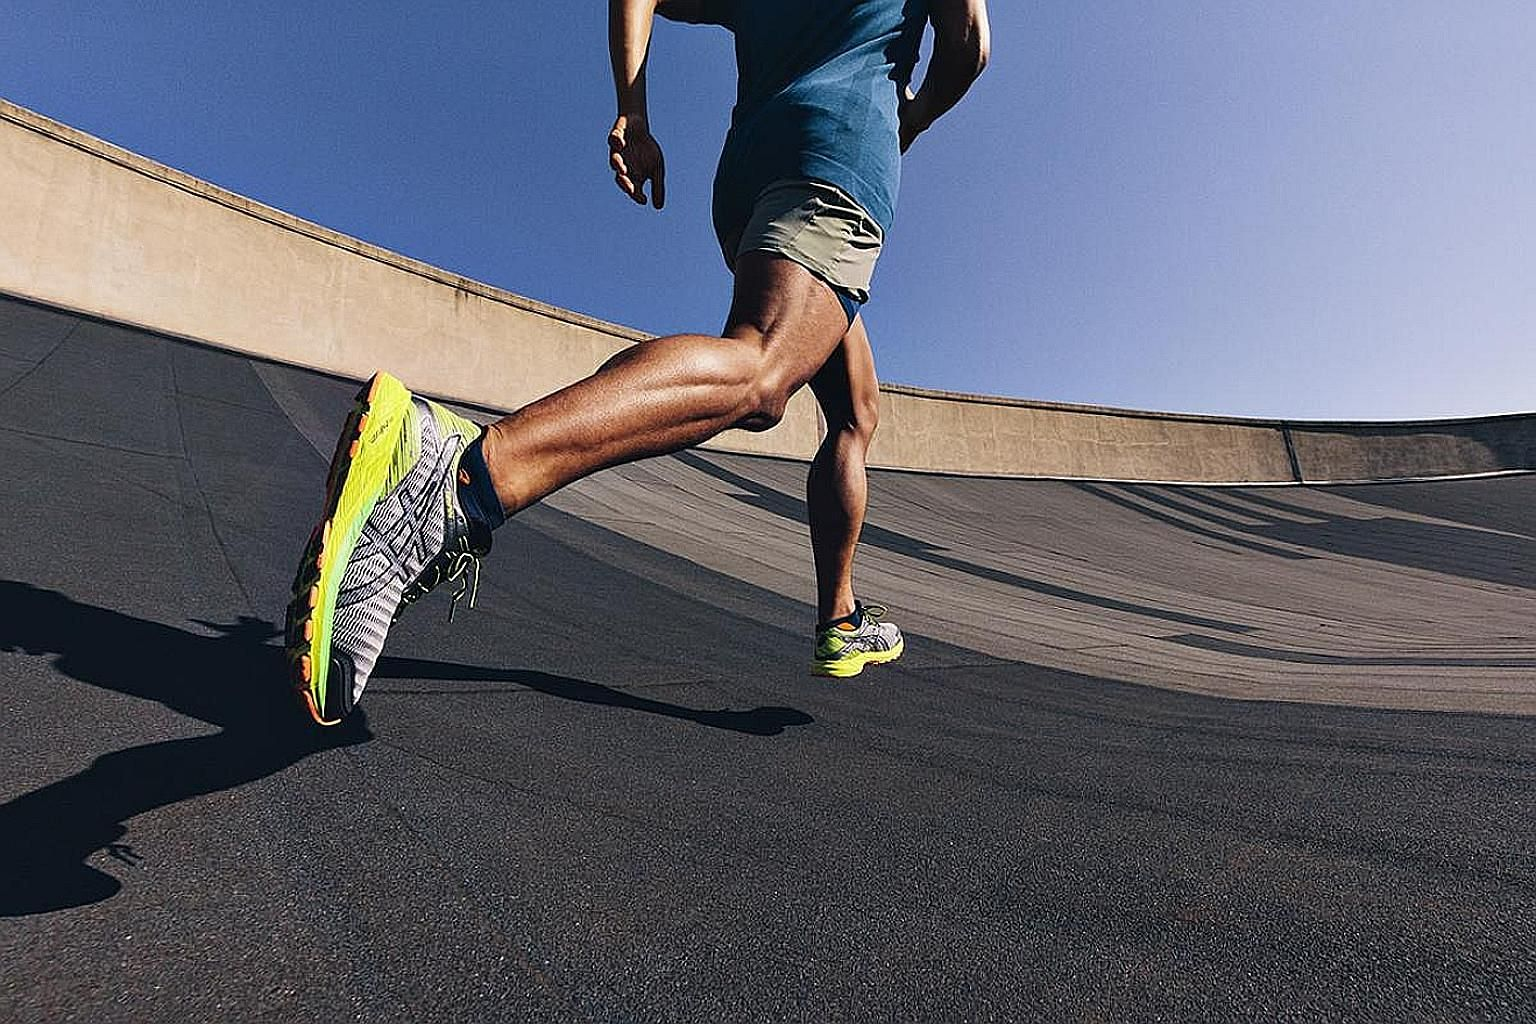 The DynaFlyte is the first Asics running shoe to feature a full-length FlyteFoam midsole.